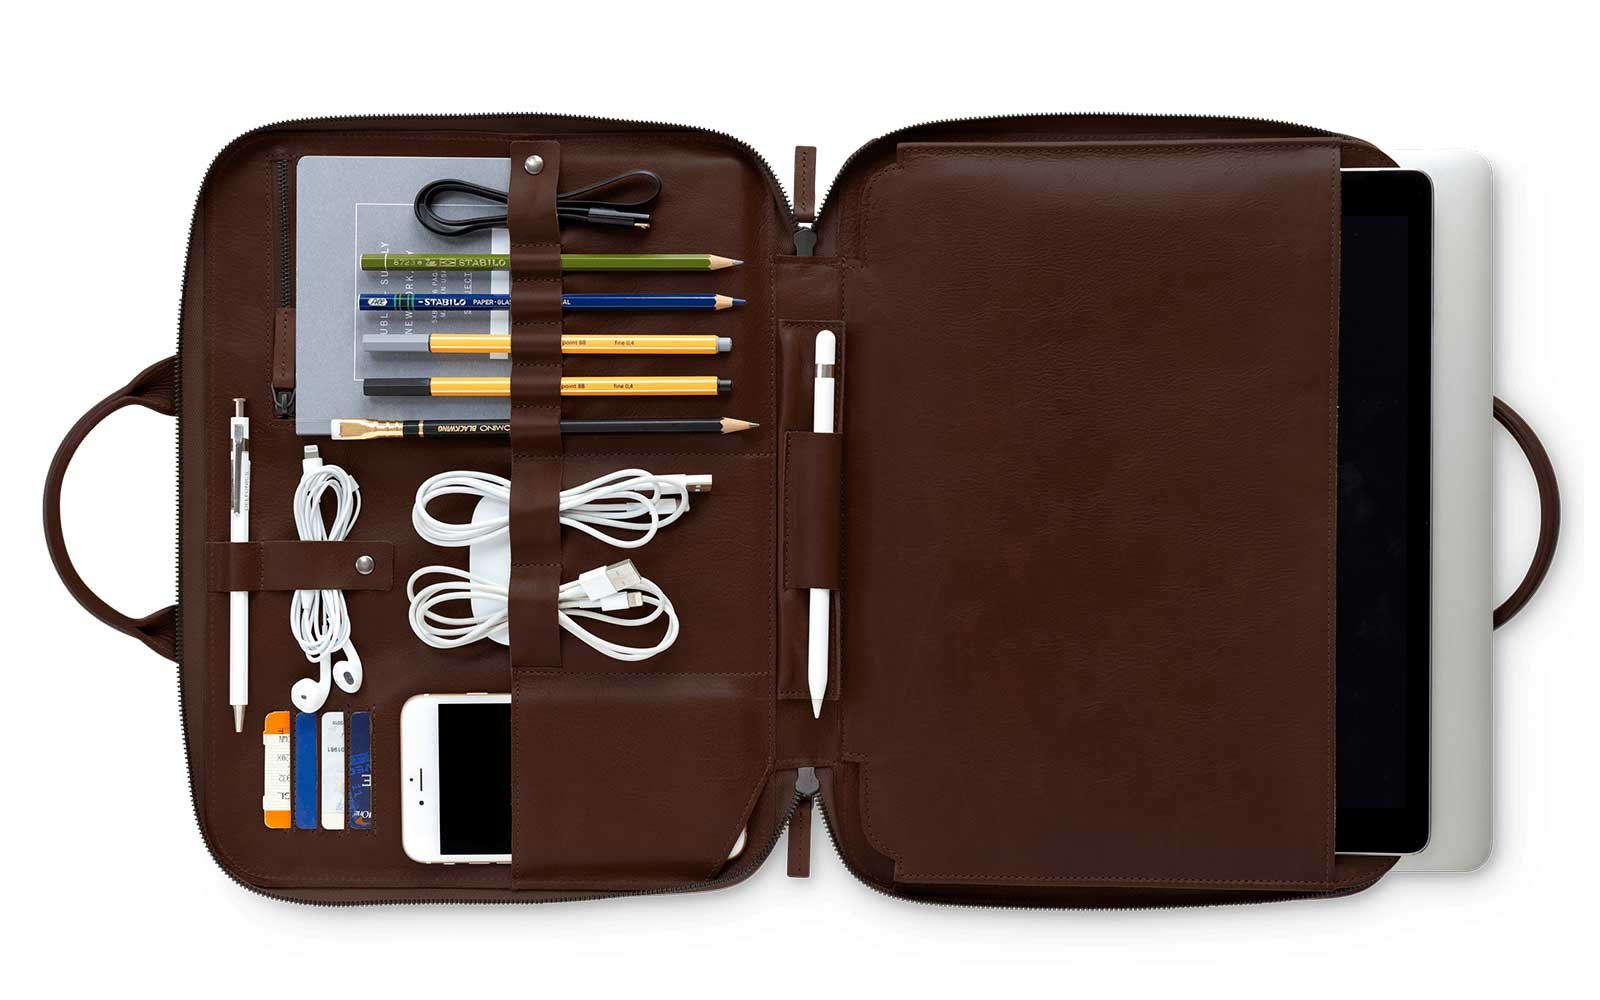 Leather laptop bag by This is Ground